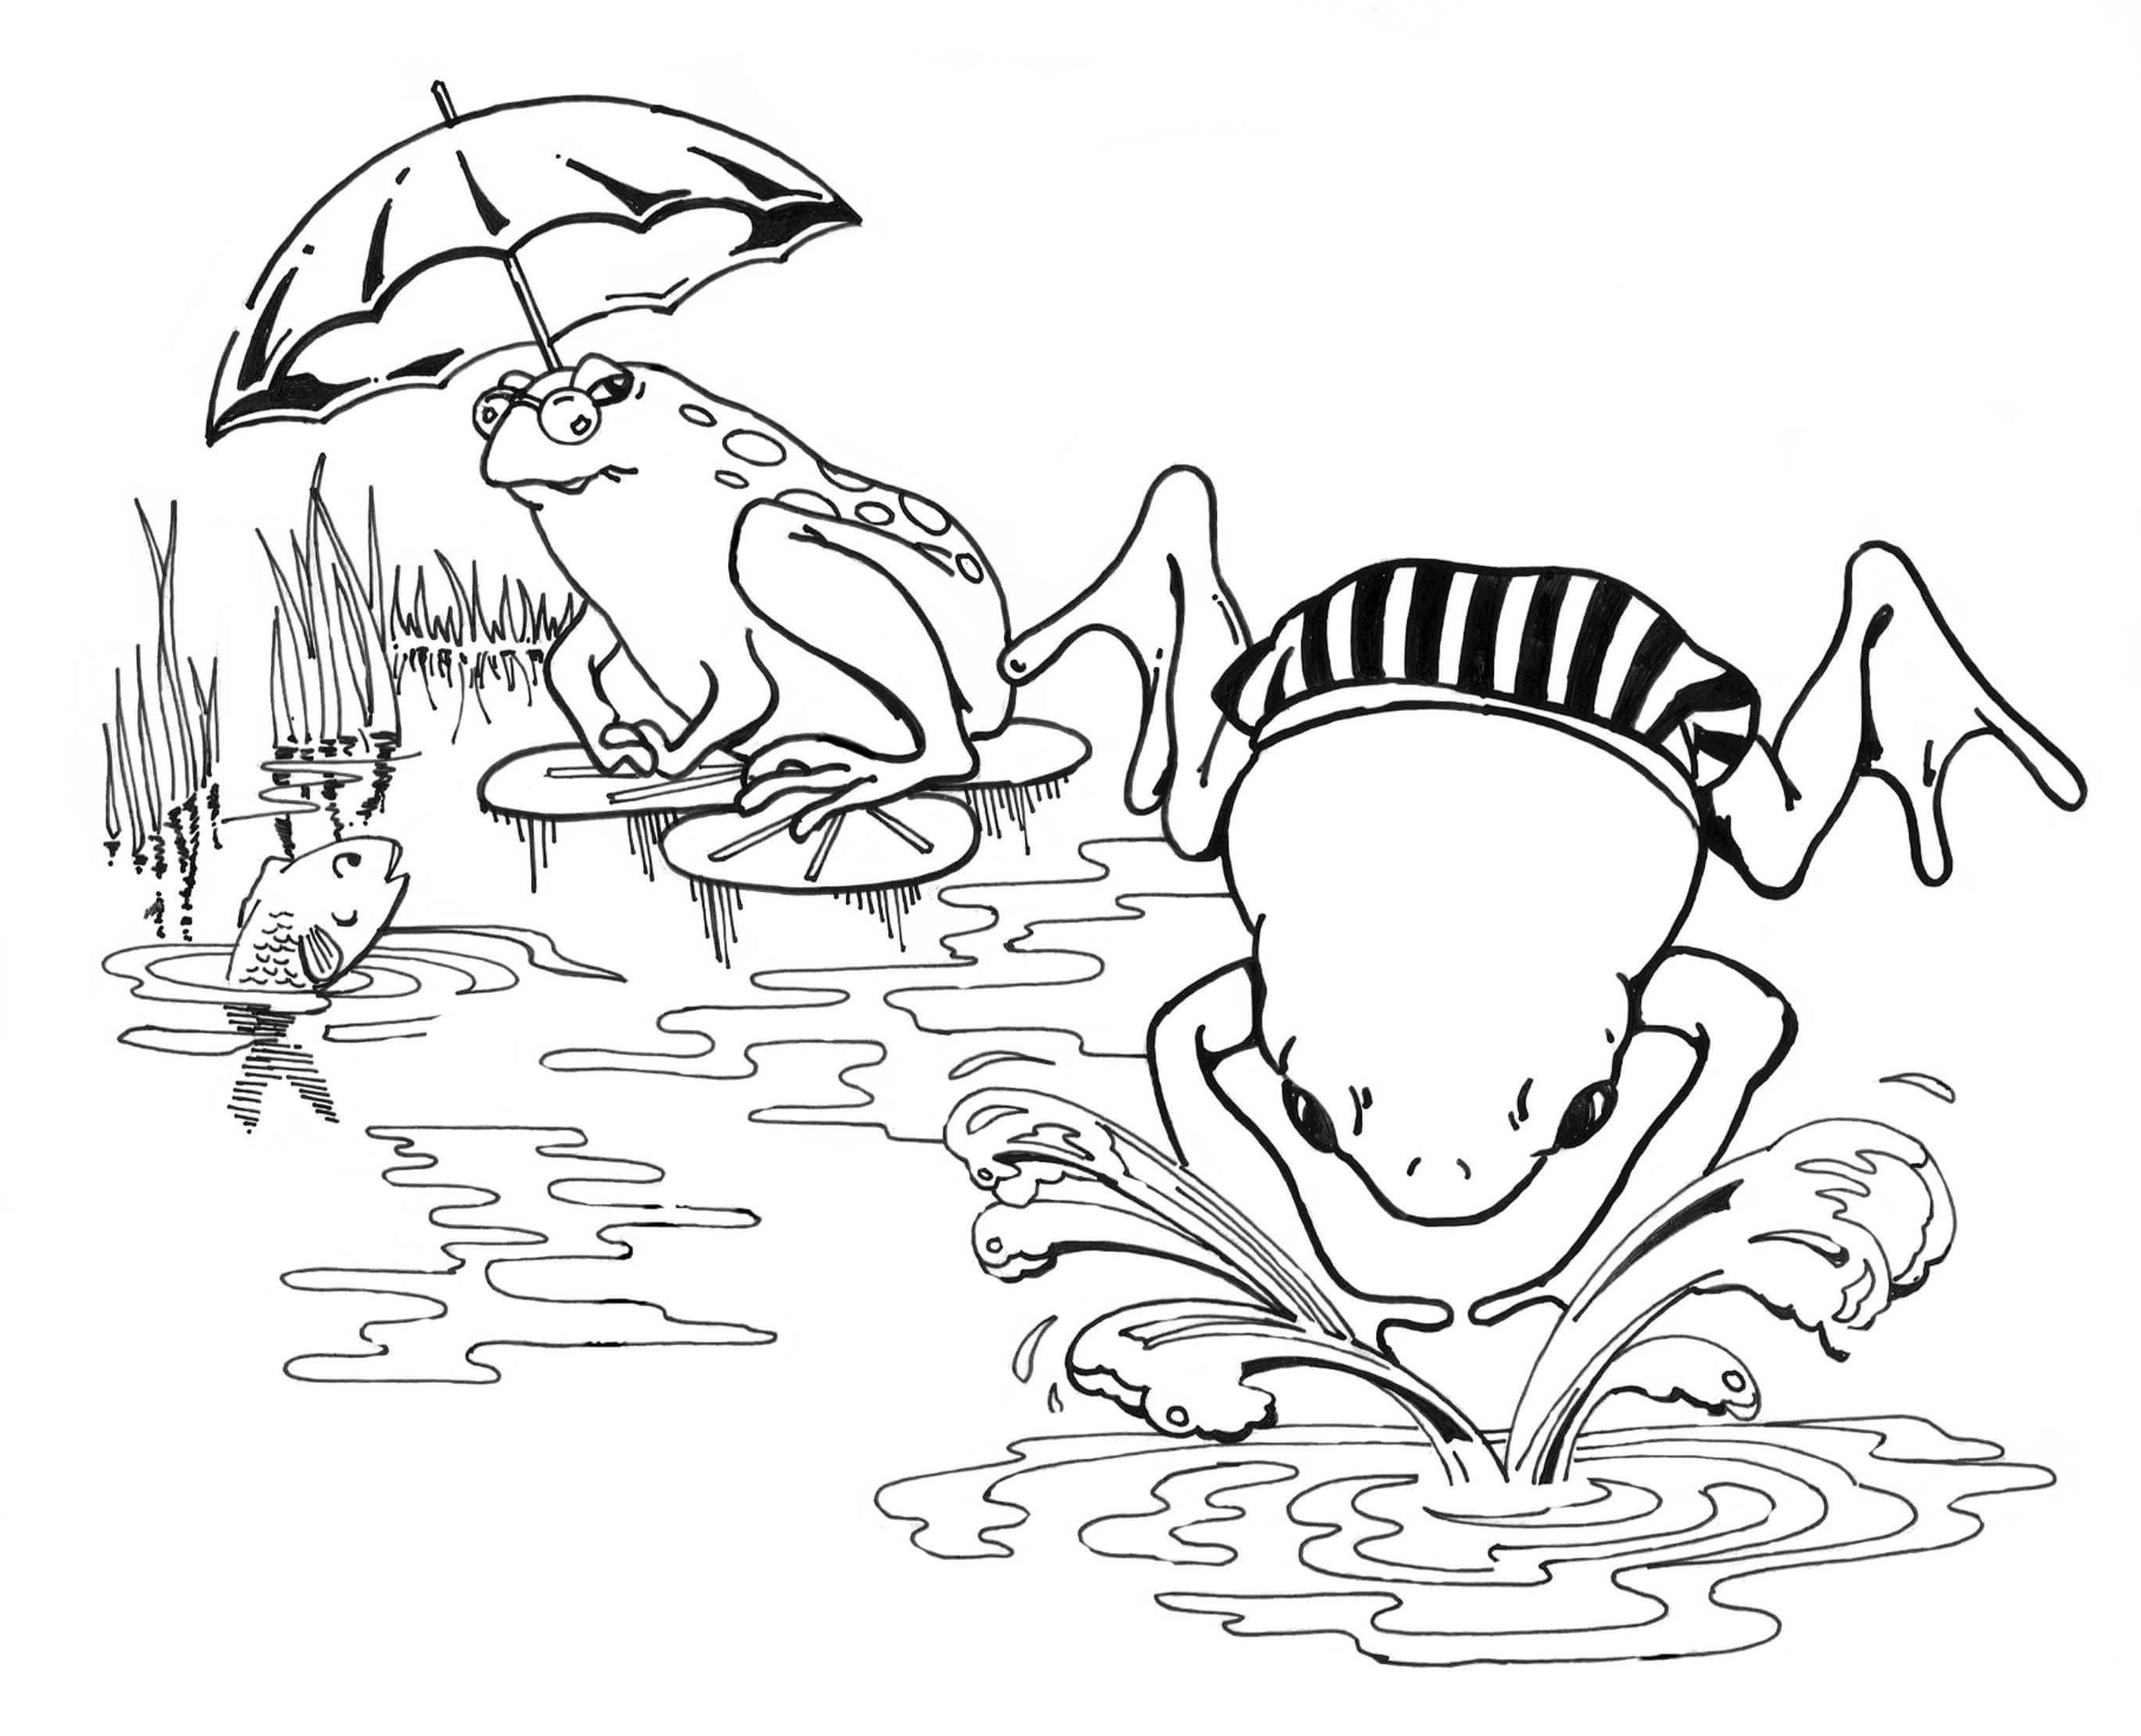 Cartoon Frogs Swimming Coloring Pages For Kids Cnn Printable Frogs Coloring Pages For Kids Frog Coloring Pages Cartoon Coloring Pages